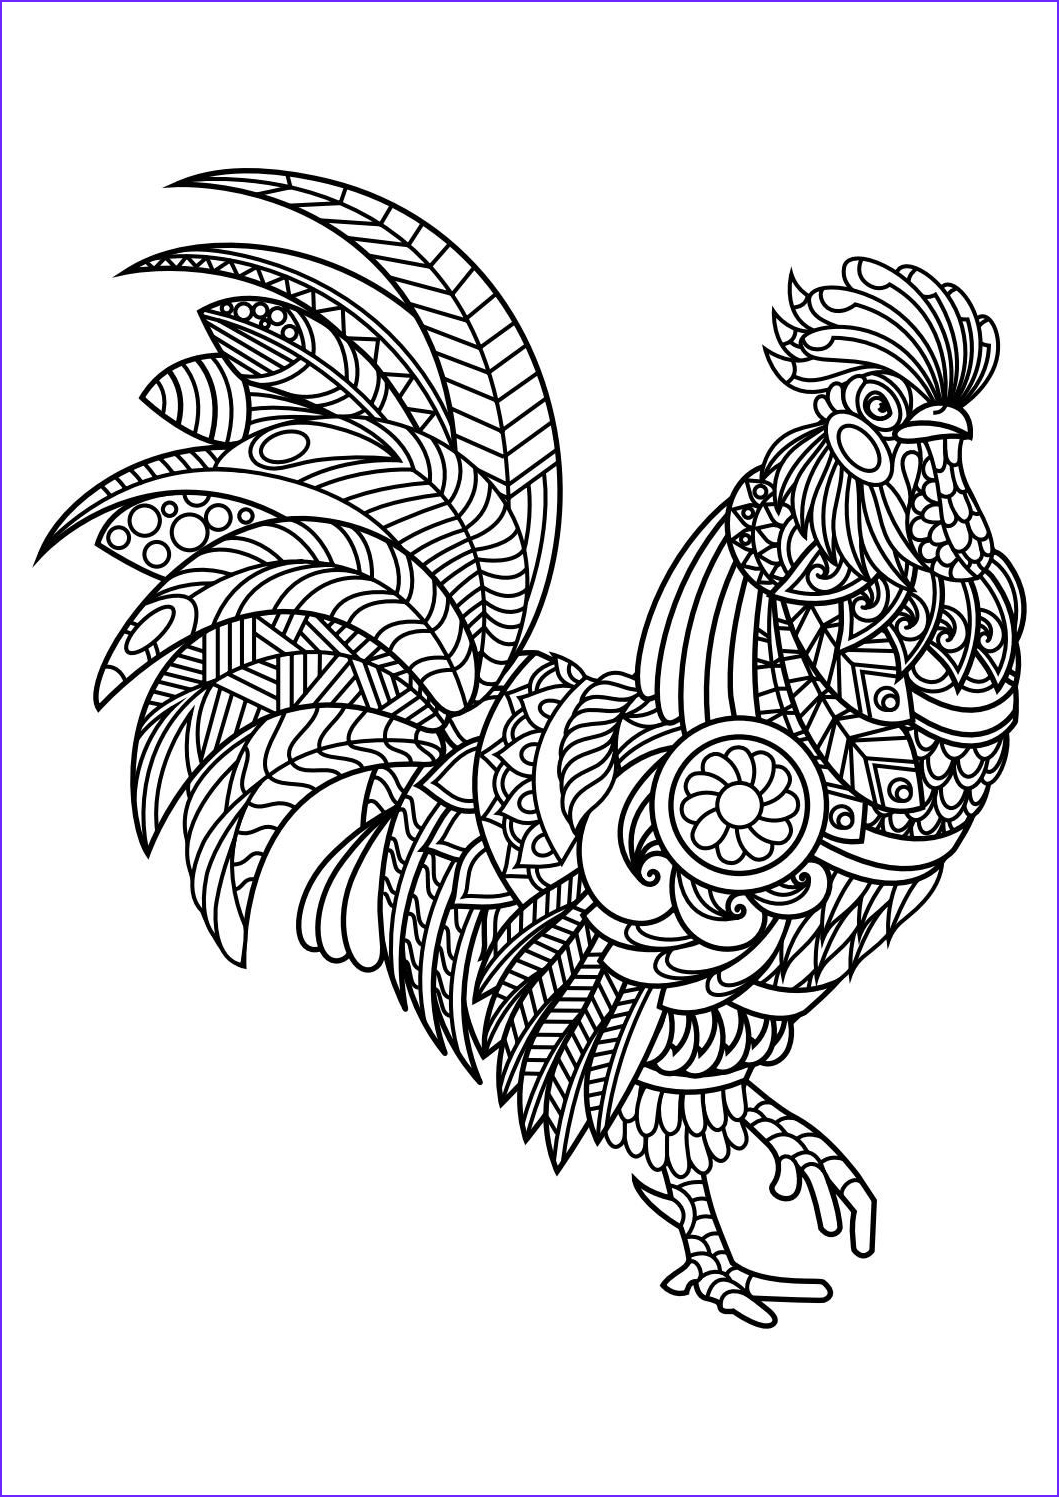 Free Printable Coloring Sheets for Adults Awesome Image Animal Coloring Pages Pdf